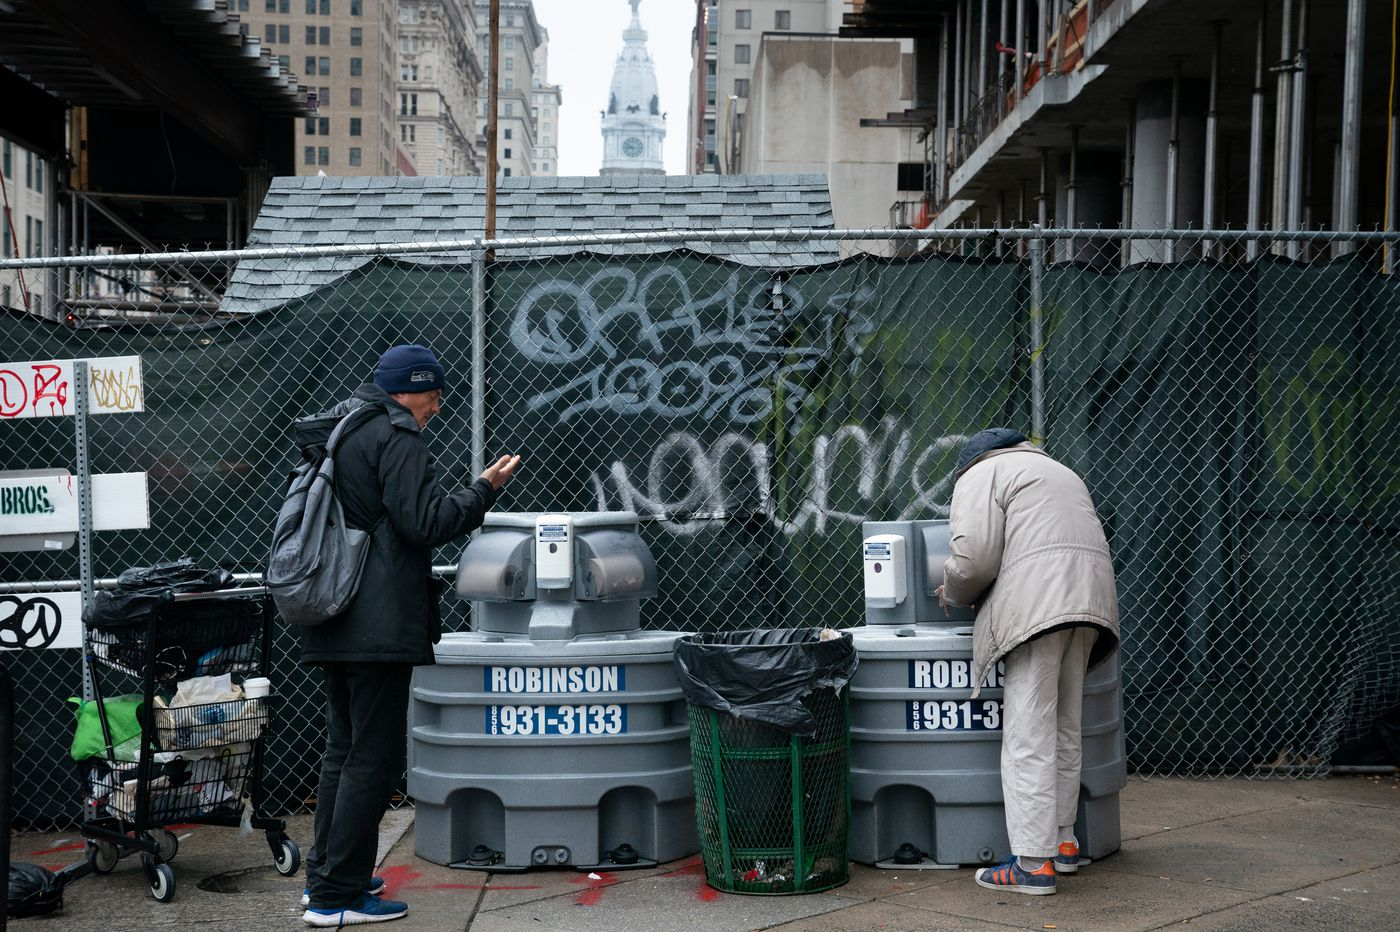 'It's heartbreaking': Coronavirus puts Philly homeless services in survival mode